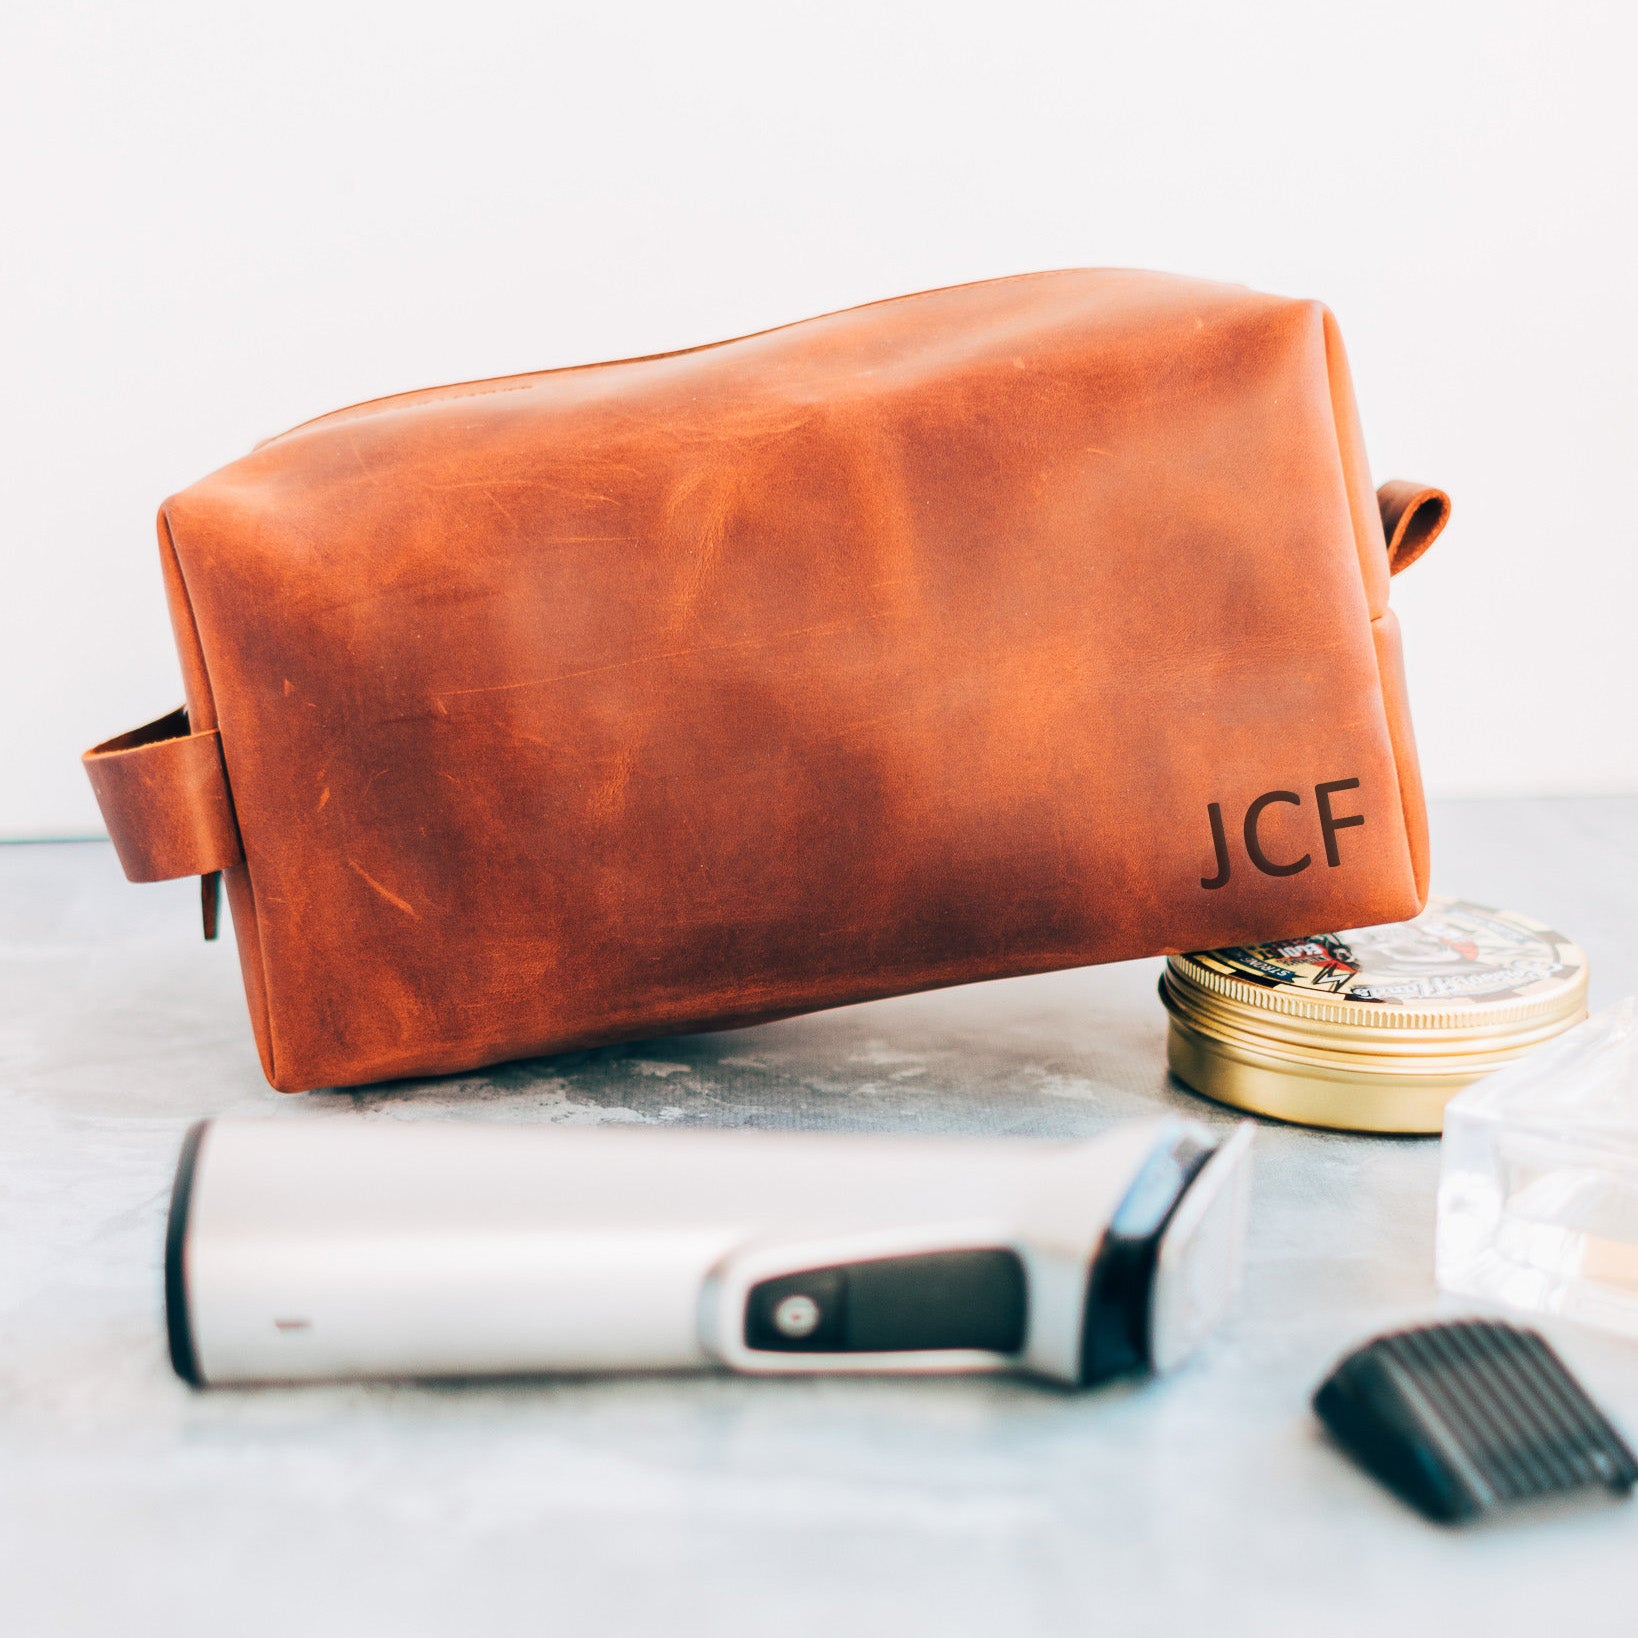 Men Leather Dopp Kit Personalized Gift with Initials Engrave Gift for Husband for Thanksgiving or Birthday Gift for Boyfriend - icambag